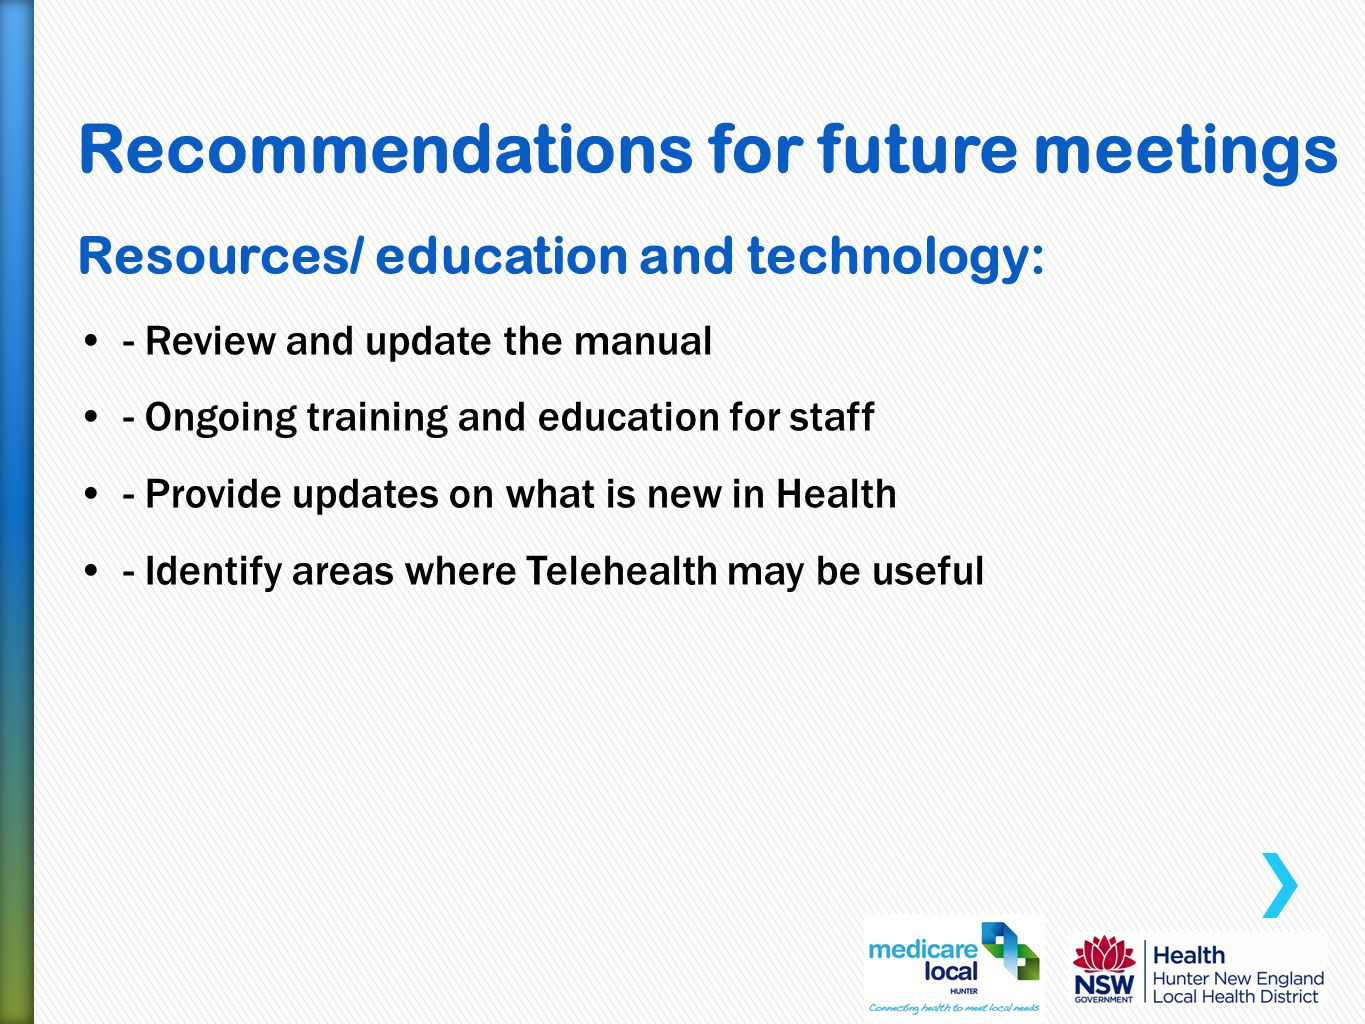 Recommendations for future meetings Resources/ education and technology: -Review and update the manual -Ongoing training and education for staff -Provide updates on what is new in Health -Identify areas where Telehealth may be useful